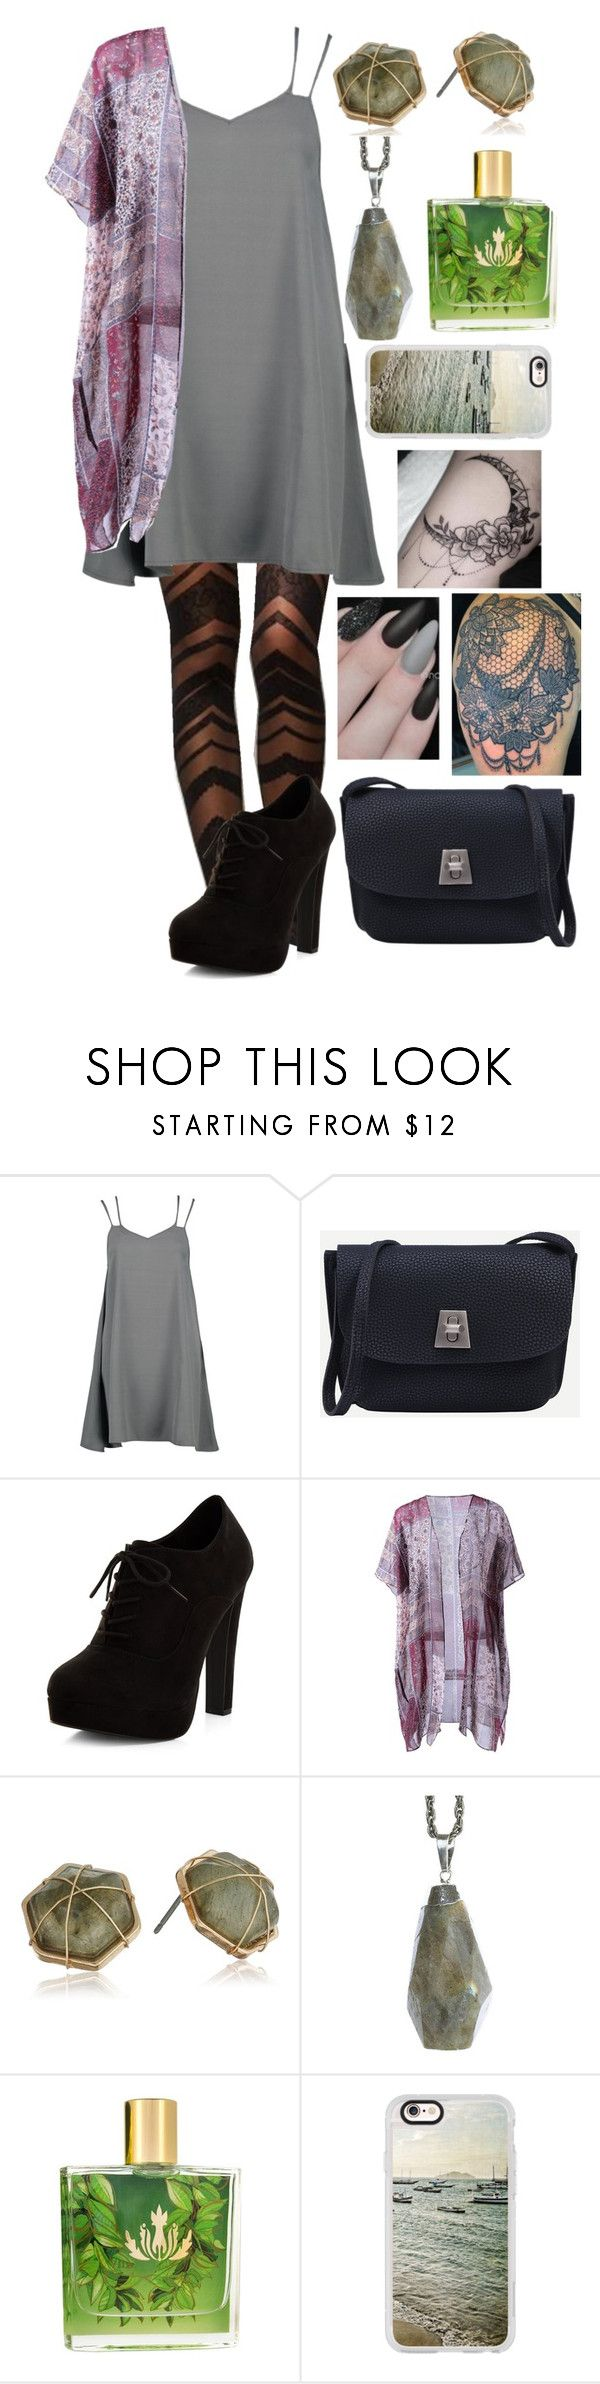 """""""Greek High Modern Day: Circe"""" by plum-and-peaches on Polyvore featuring Boohoo, Queen Bee, New Look, Panacea, Shop Dixi, Malie Organics, Casetify and modern"""